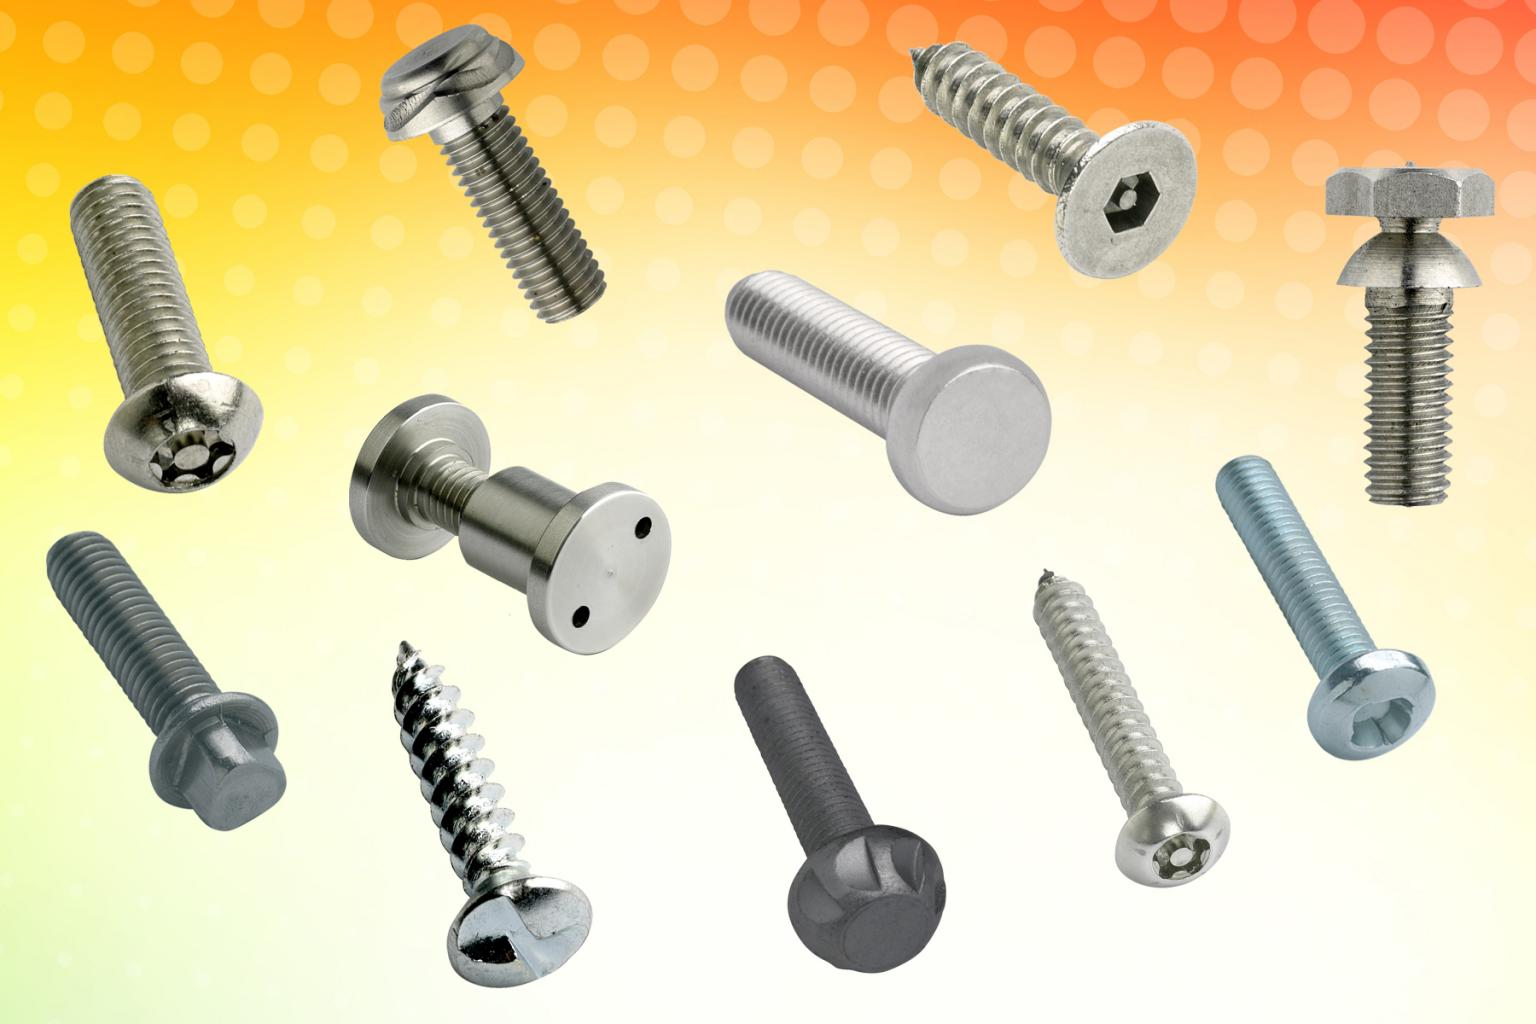 Various security fasteners